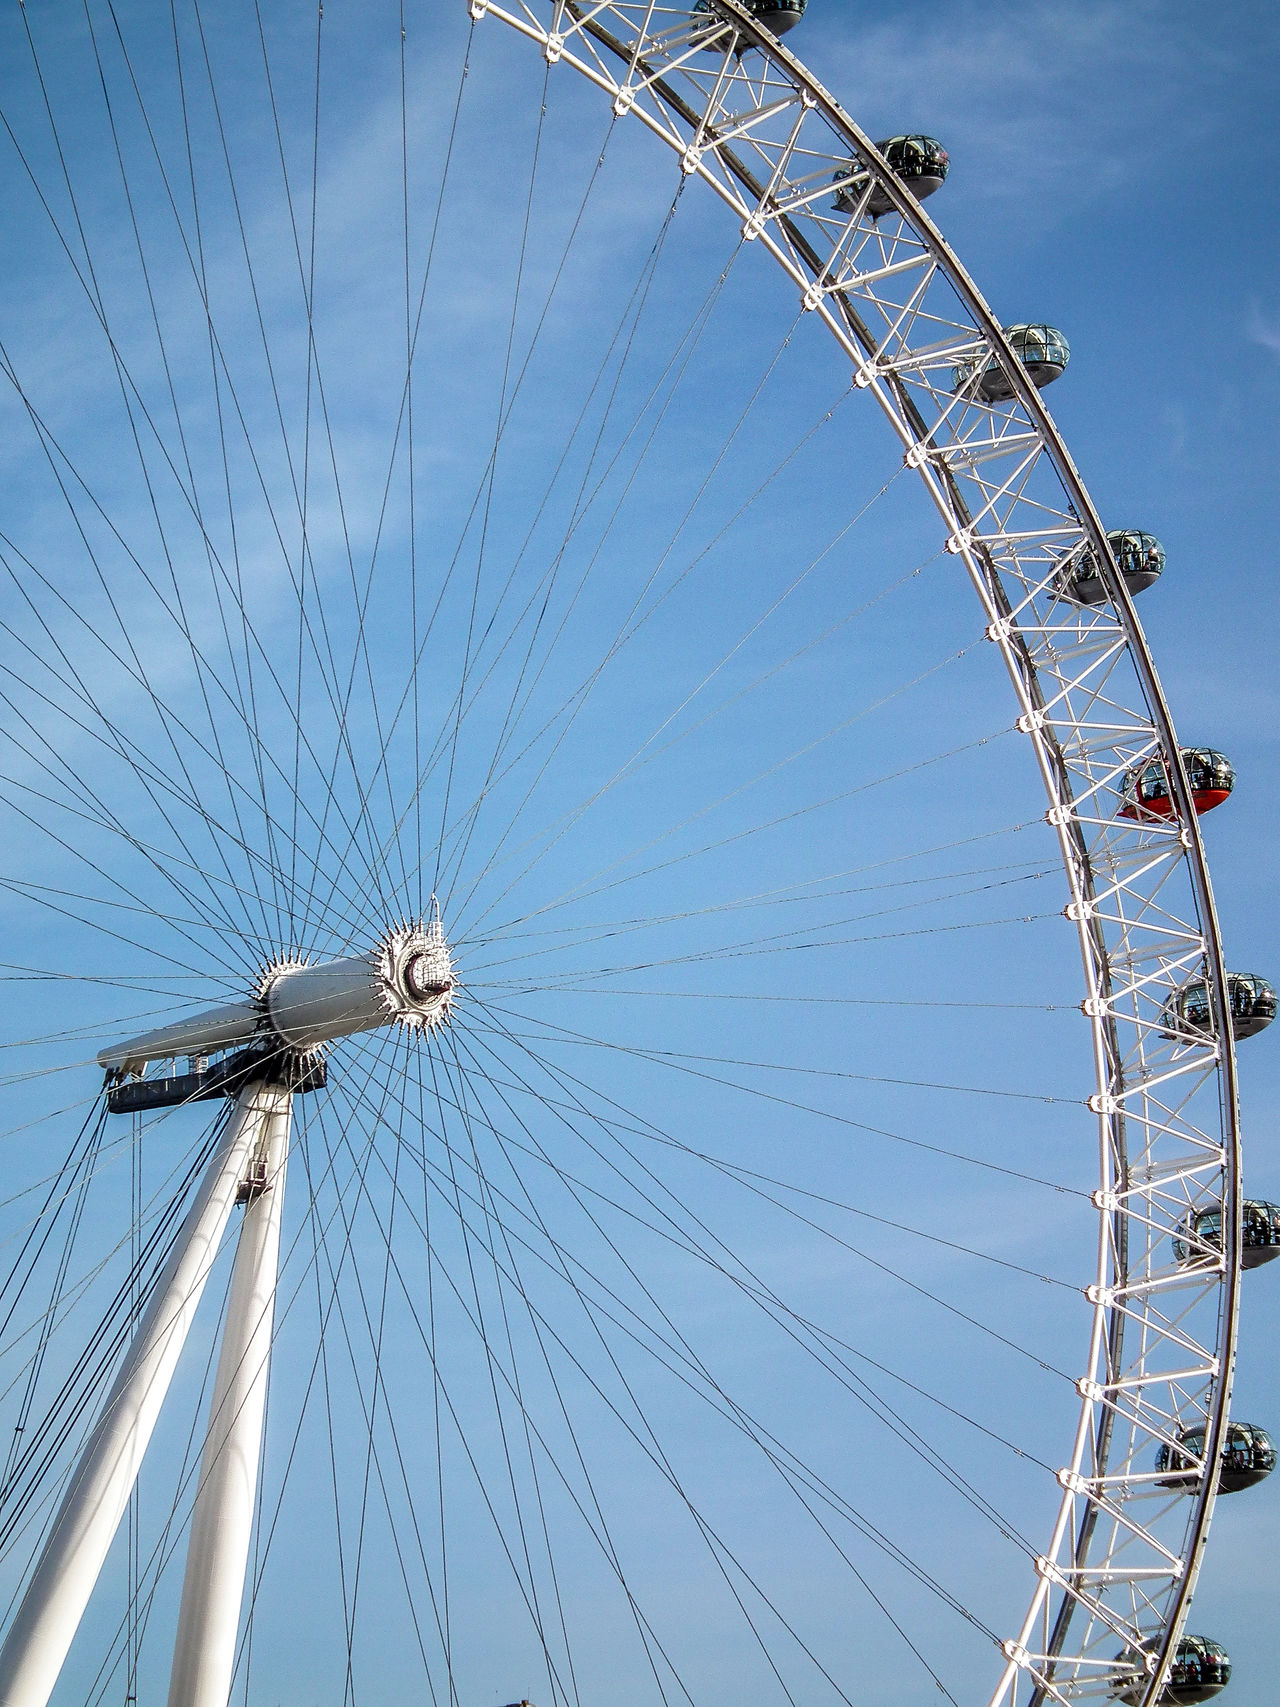 Amusement Park Big Wheel Day England Ferris Wheel Gran Bretagna Great Britain Großbritannien Inghilterra London London Eye London Eye🎡 LondonEye Londra Low Angle View No People Outdoors Sky